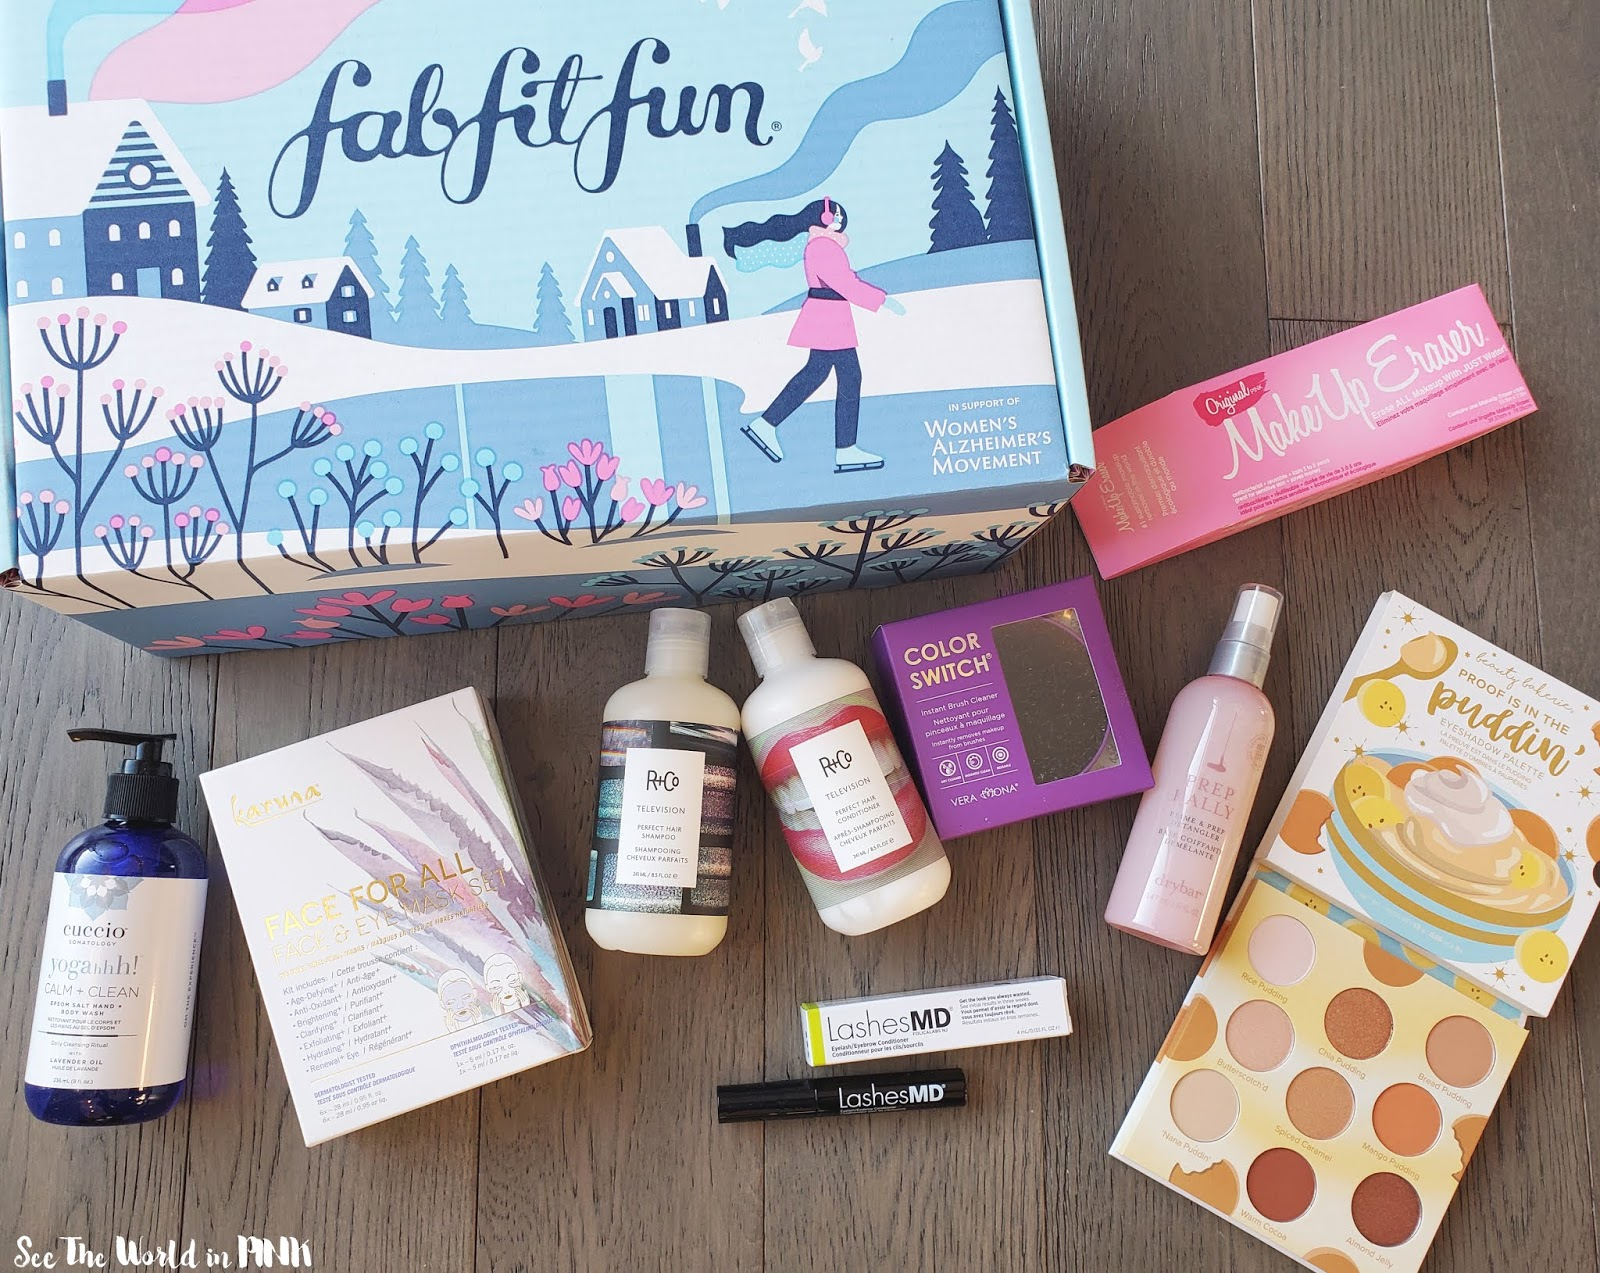 Winter 2019 FabFitFun - Lifestyle Subscription Unboxing